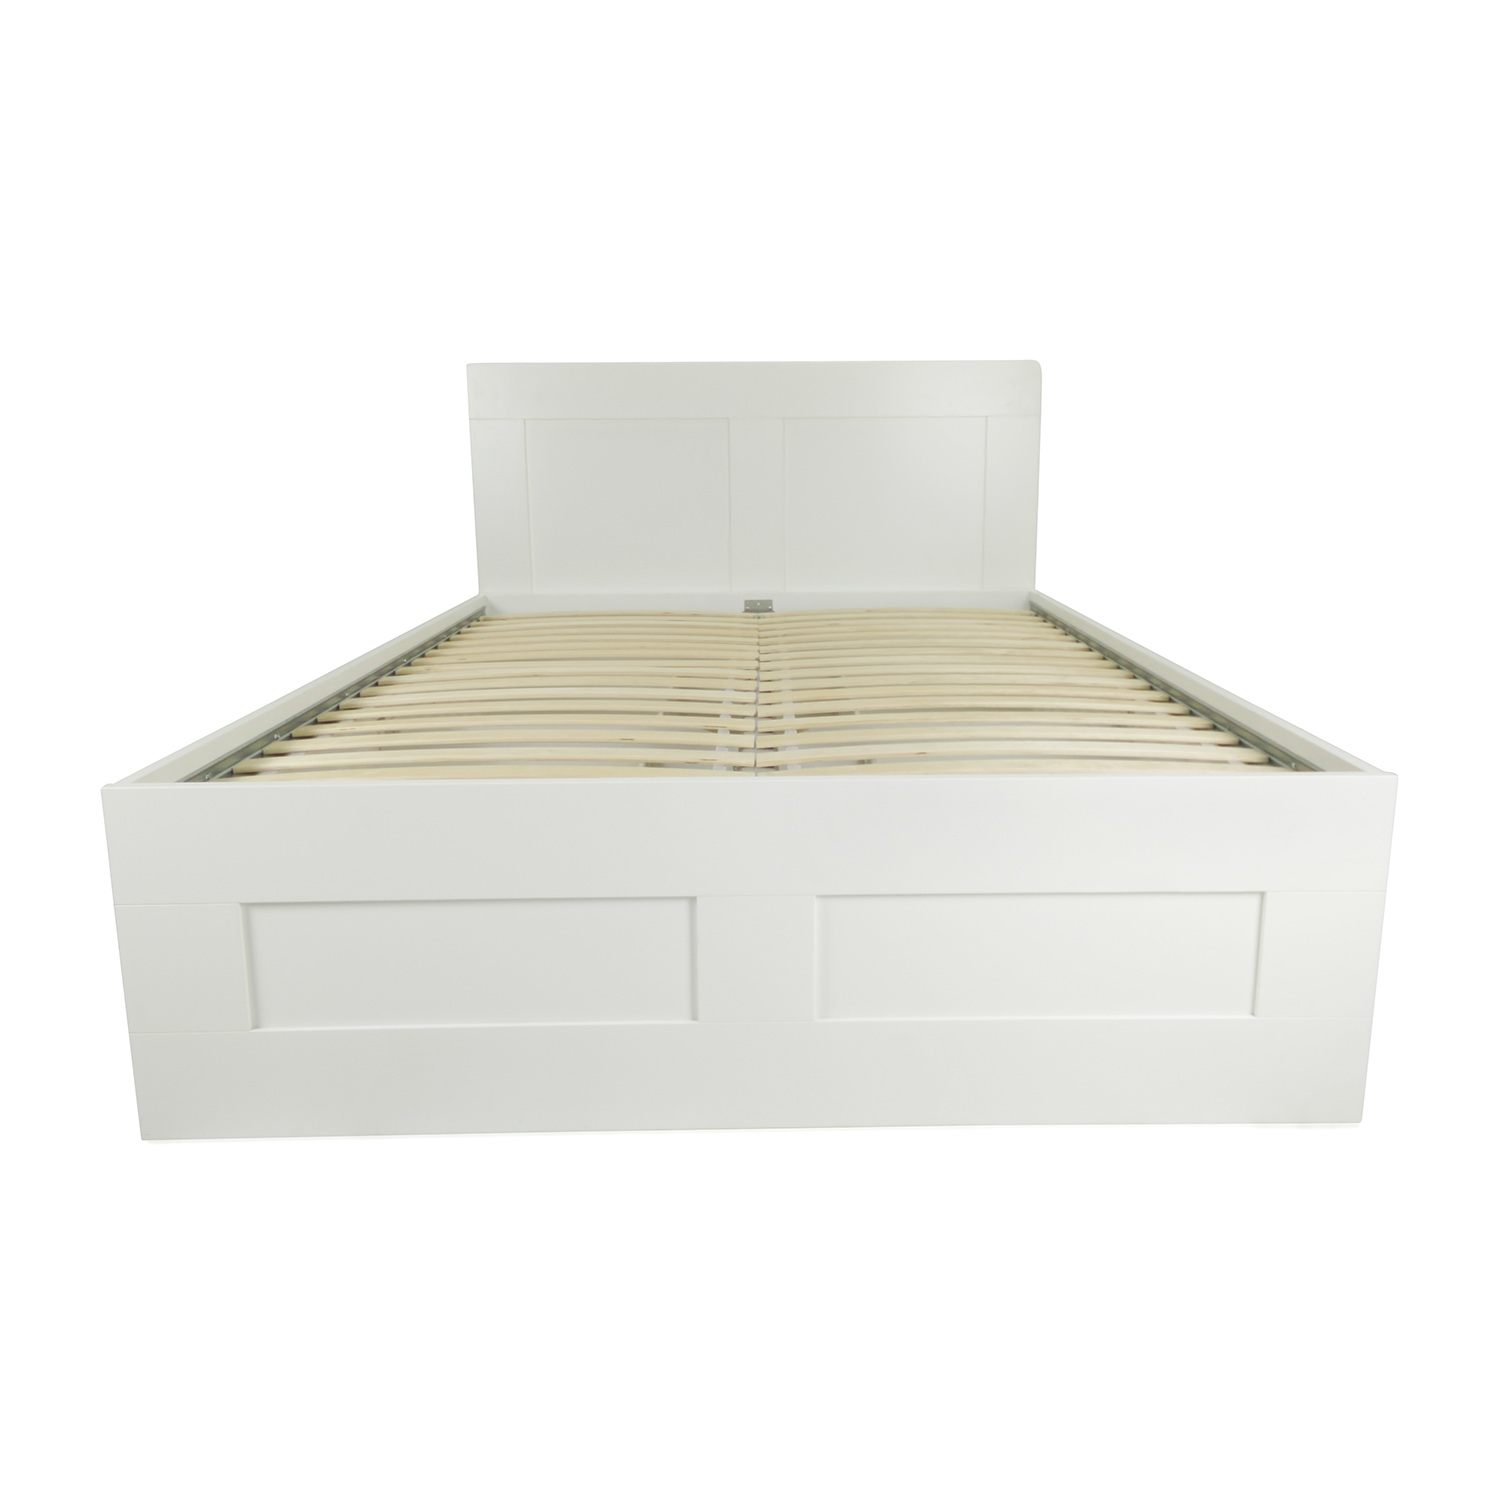 Ikea Queen Size Bed Frame With Drawers